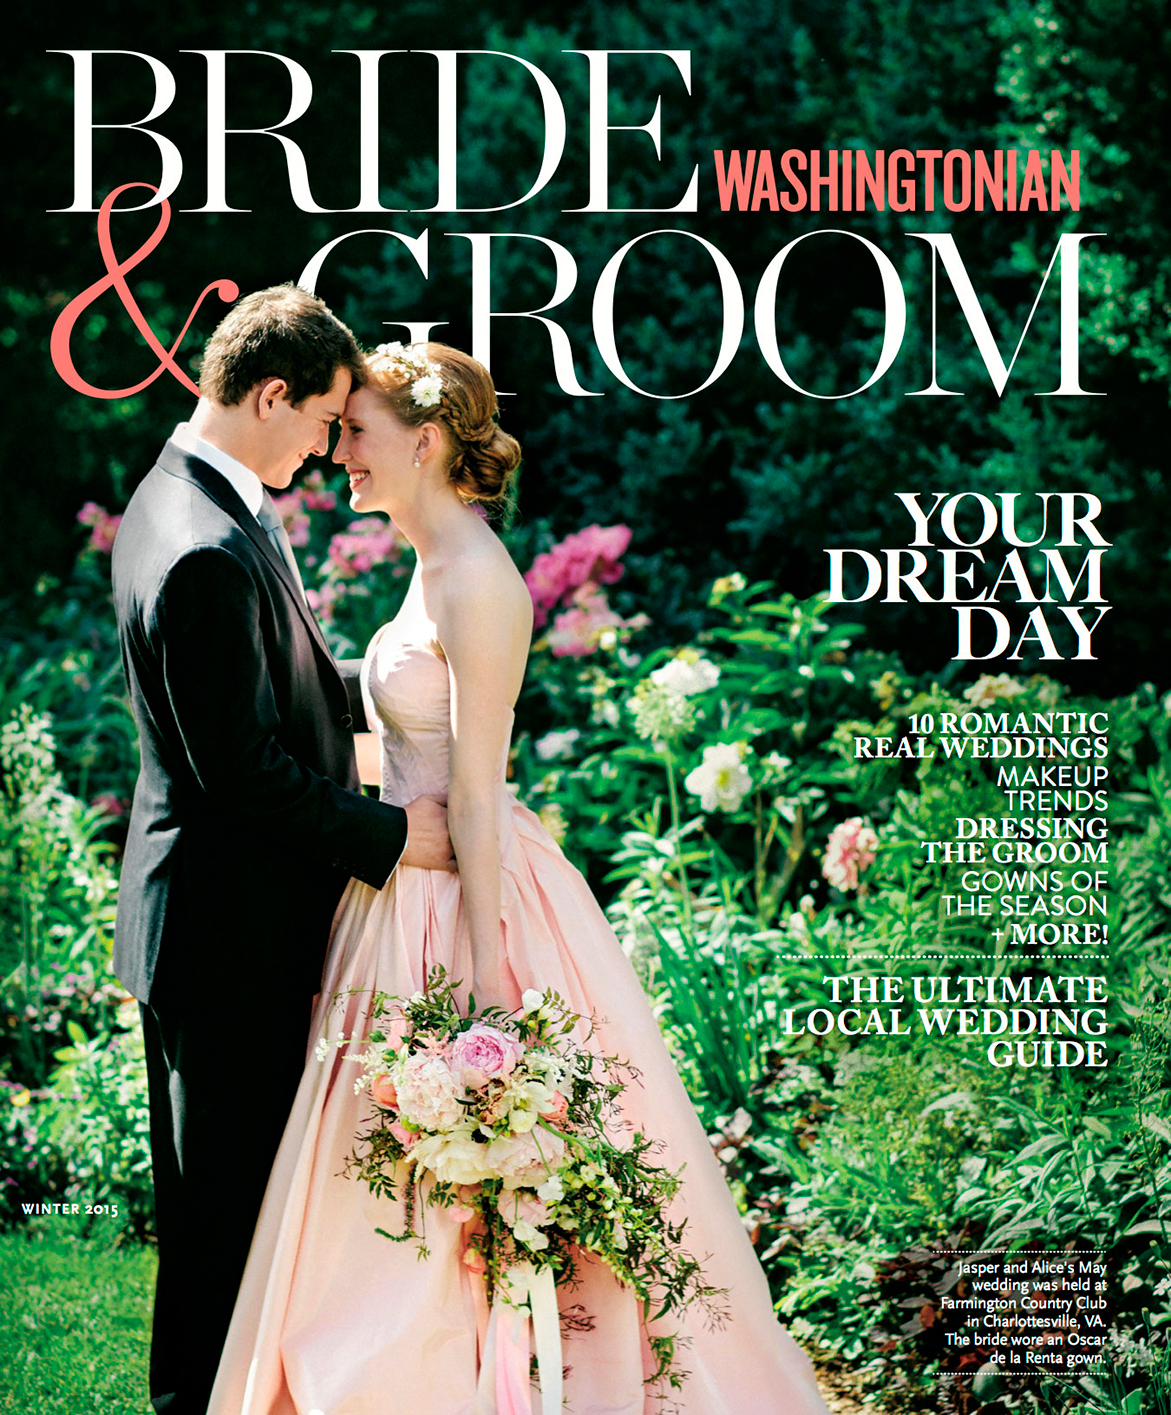 Bride & Groom Magazine (Winter 2015).